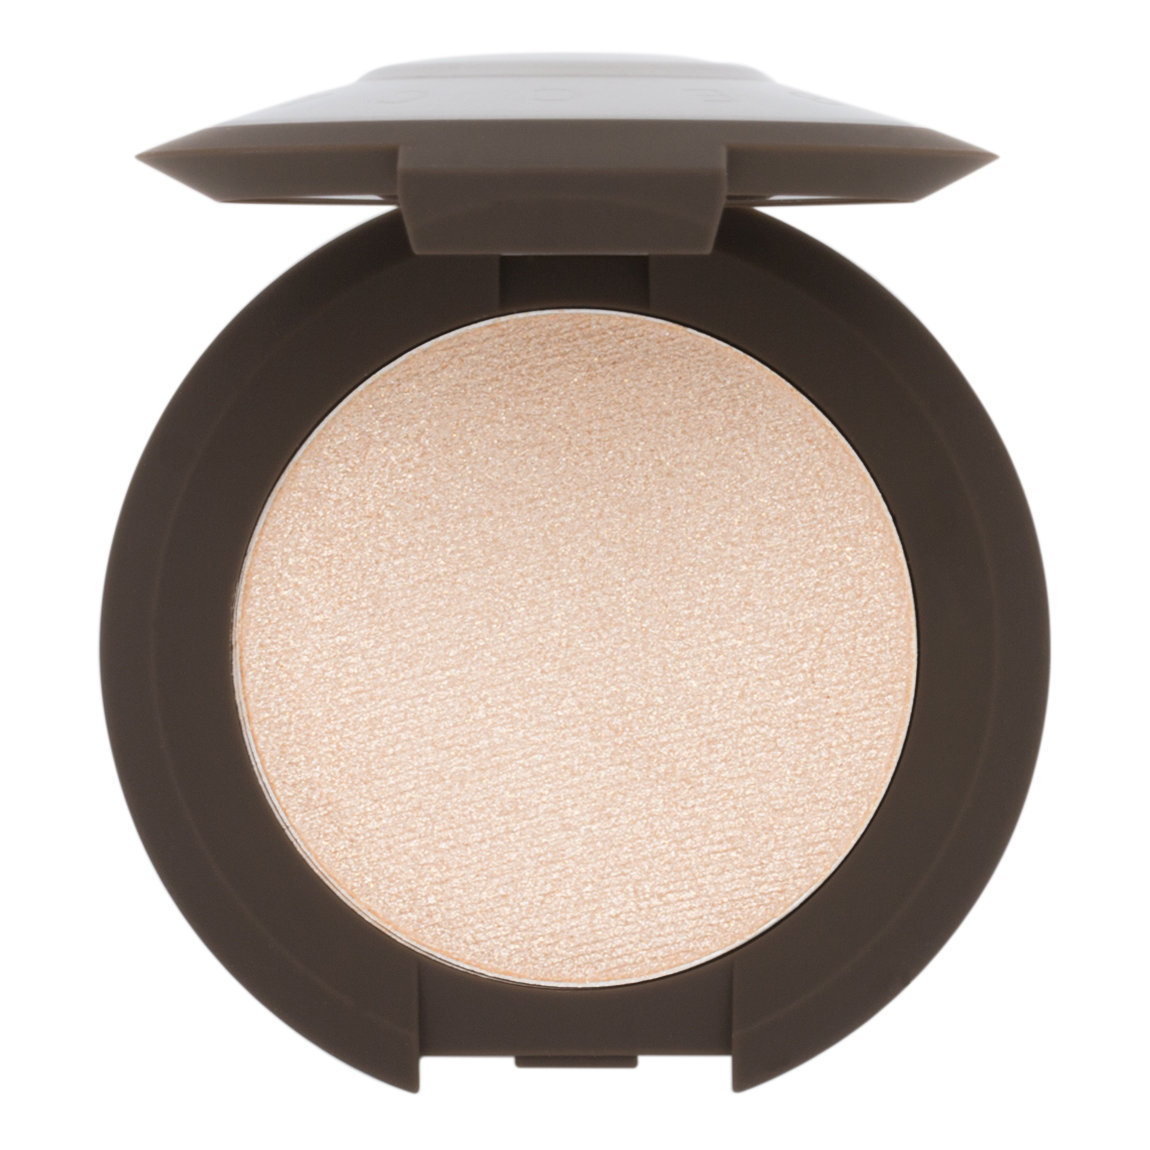 BECCA Shimmering Skin Perfector Pressed Mini Moonstone product swatch.